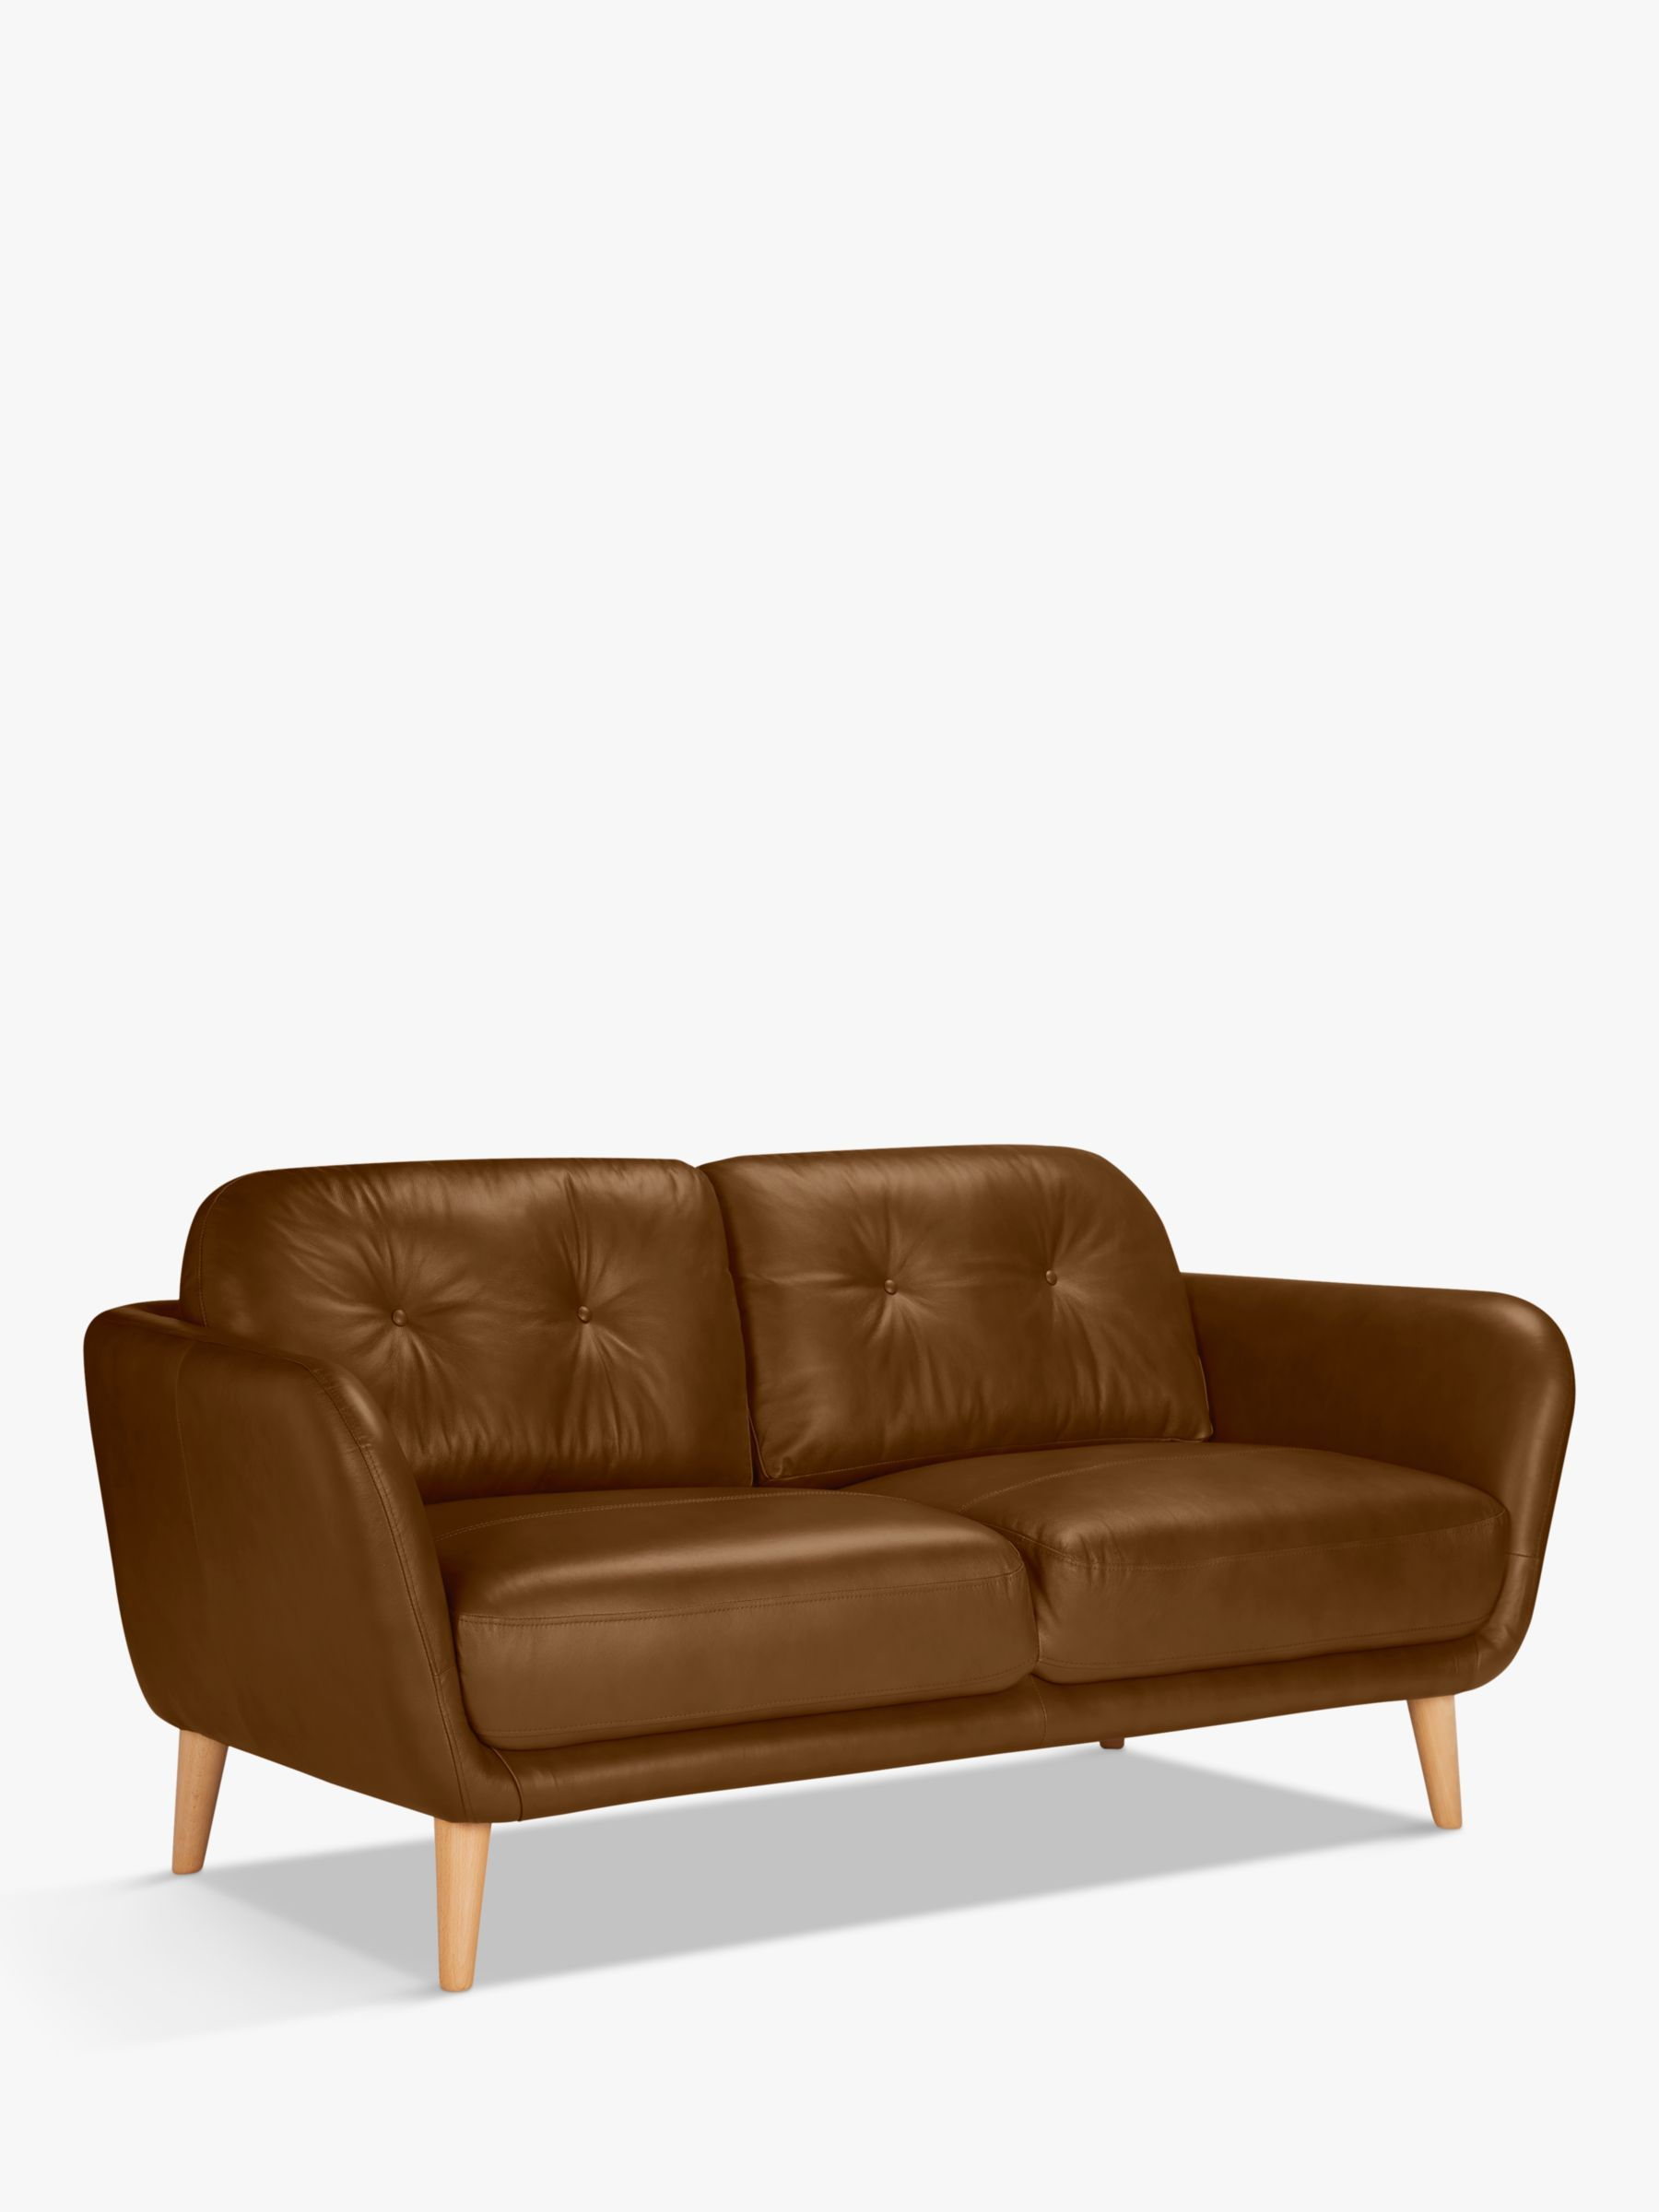 House By John Lewis Arlo Medium 2 Seater Leather Sofa Dark Leg Leather Sofa 3 Seater Leather Sofa Sofa